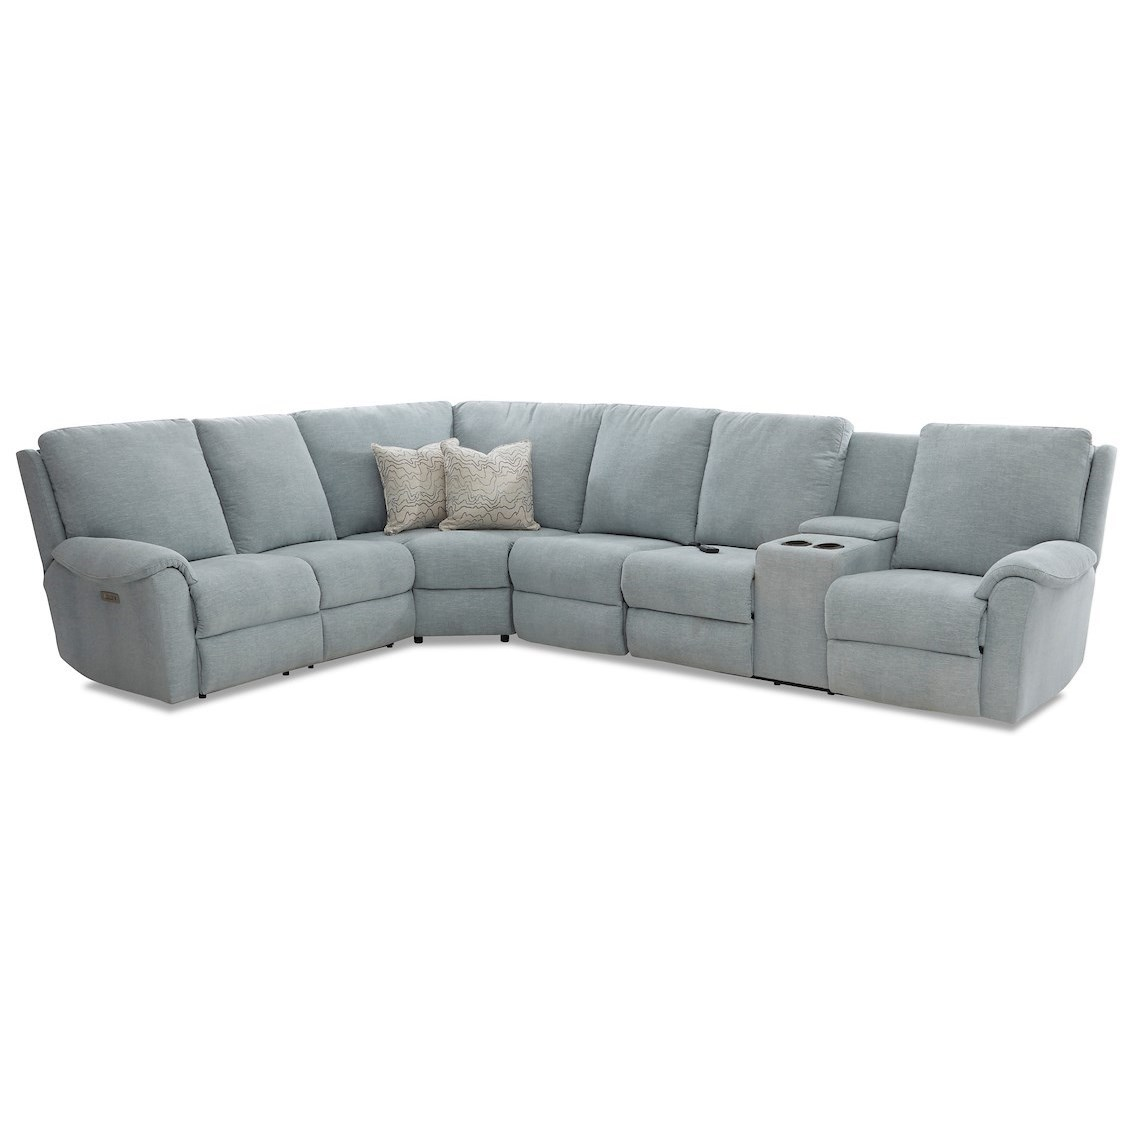 Davos Pwr Recline Sectional w/RAF Cnsl/PwrHeadrest by Klaussner at Johnny Janosik